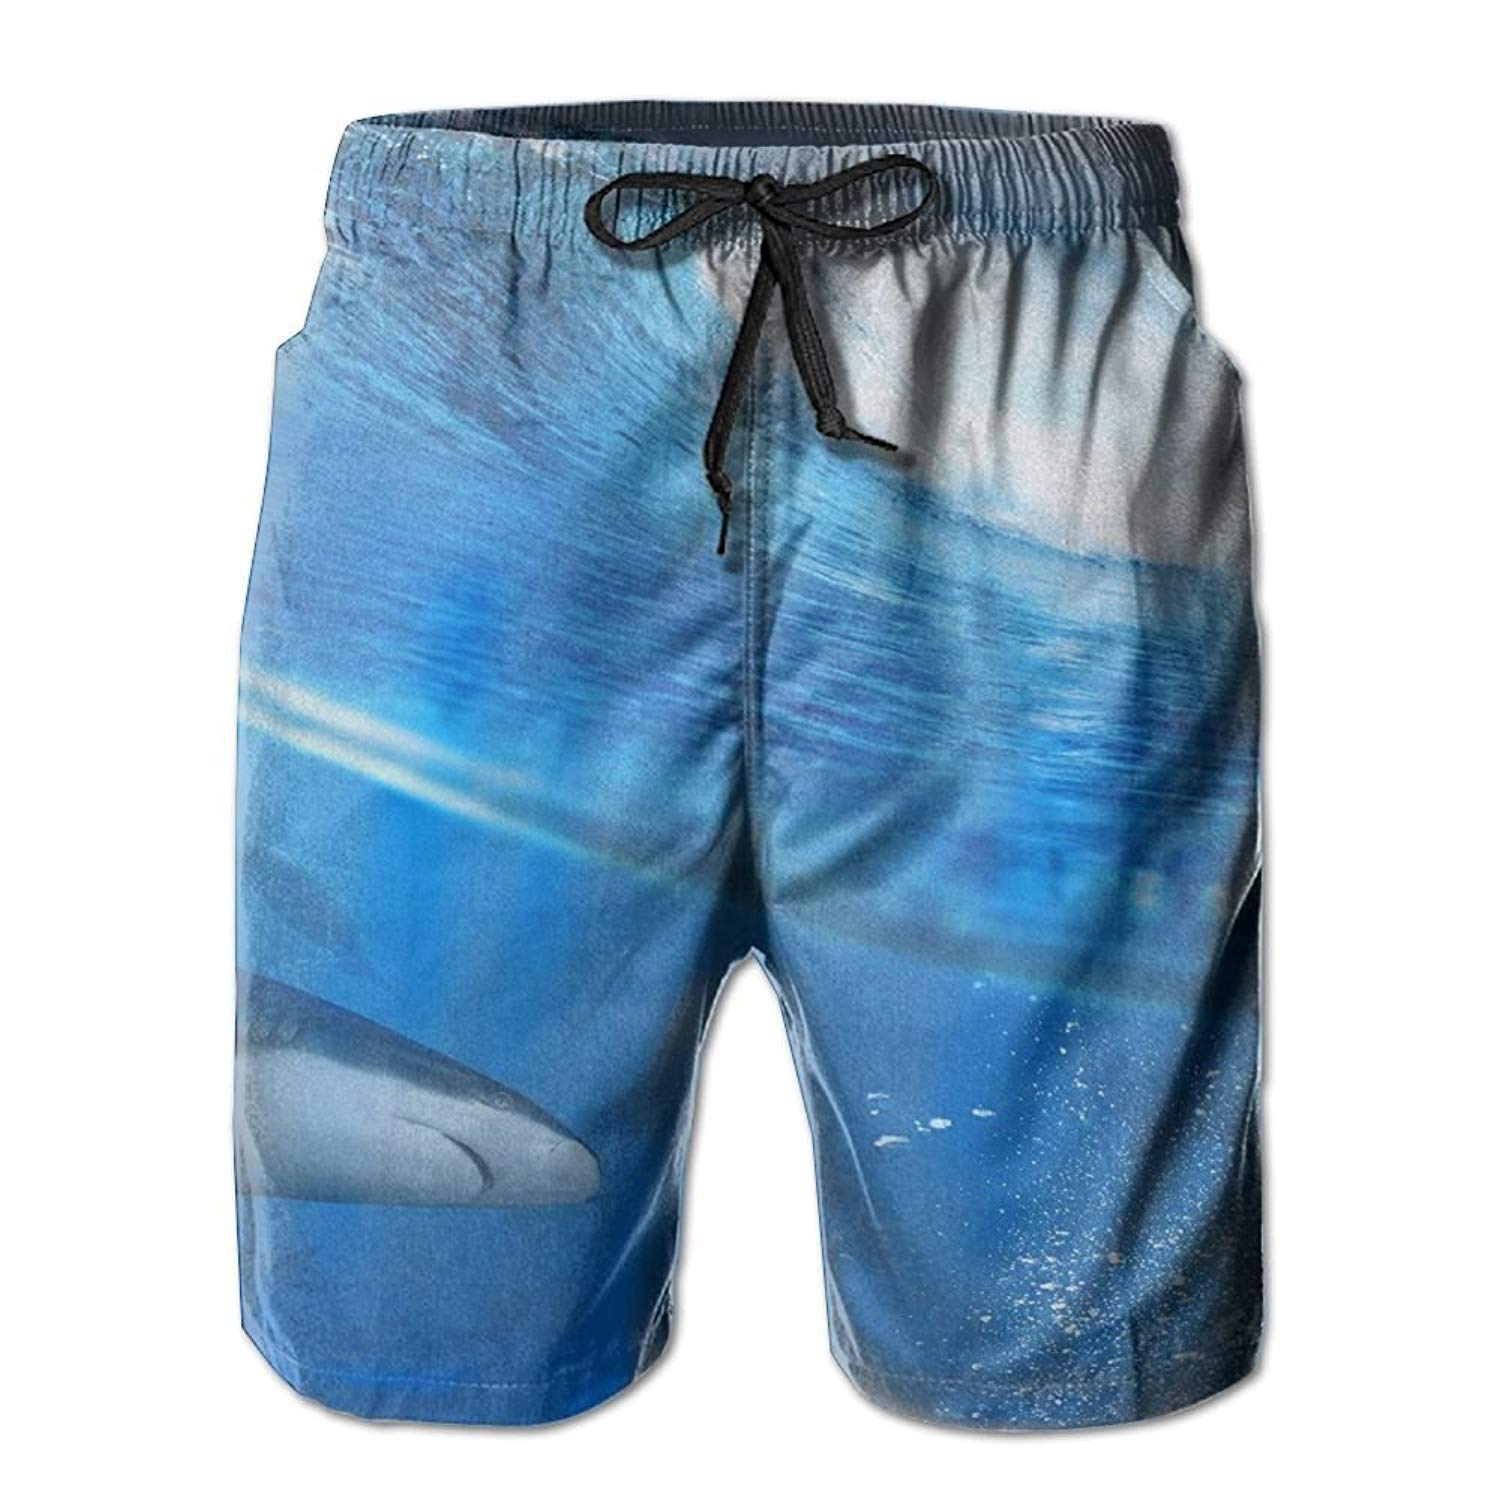 Shark Beach Pants Men Summer Pants Casual Quick Dry Bathing Suits for Swim Trunks Cargo Shorts